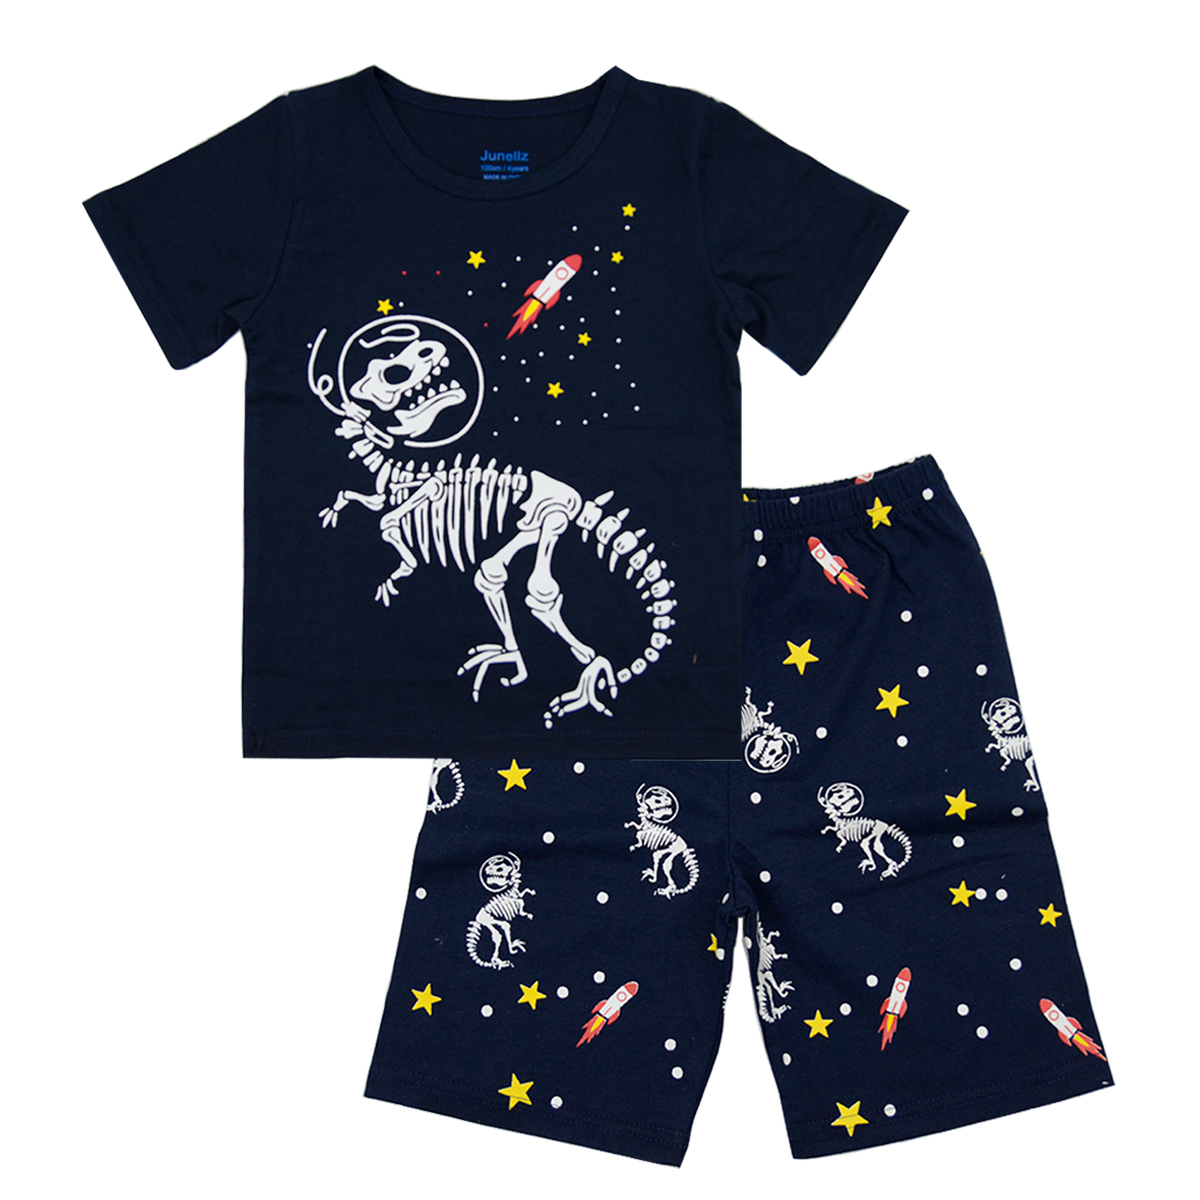 Junellz Boys Summer Pajamas Sets Glow in The Dark Dinosaur Gifts 100% Cotton Dinosaur Costume Kids Outfit Clothes Toddler Pjs